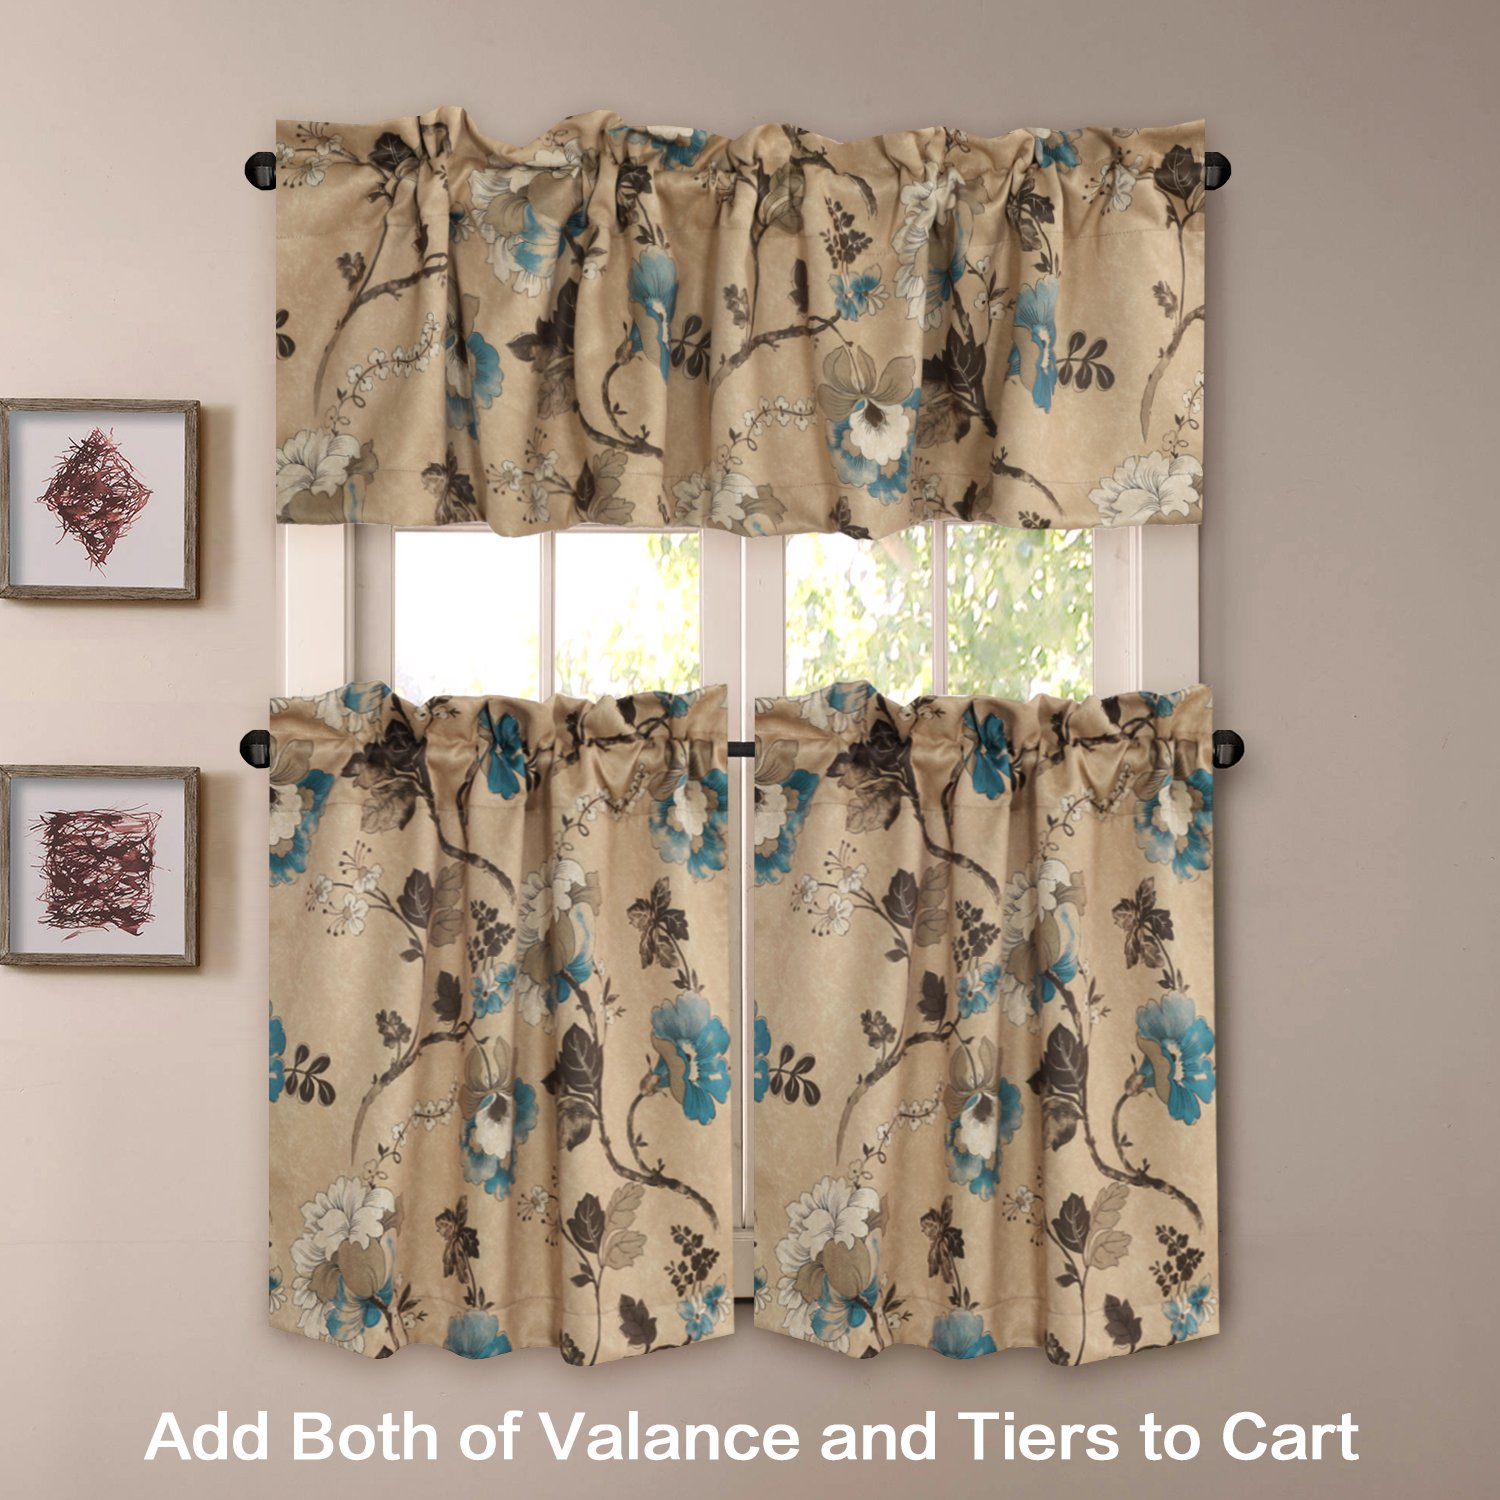 H.VERSAILTEX Thermal Insulated Ultra Soft Rustic Kitchen Curtains,Rod  Pocket Window Curtain Tiers for Café, Bath, Laundry - Vintage Floral  Pattern - ...